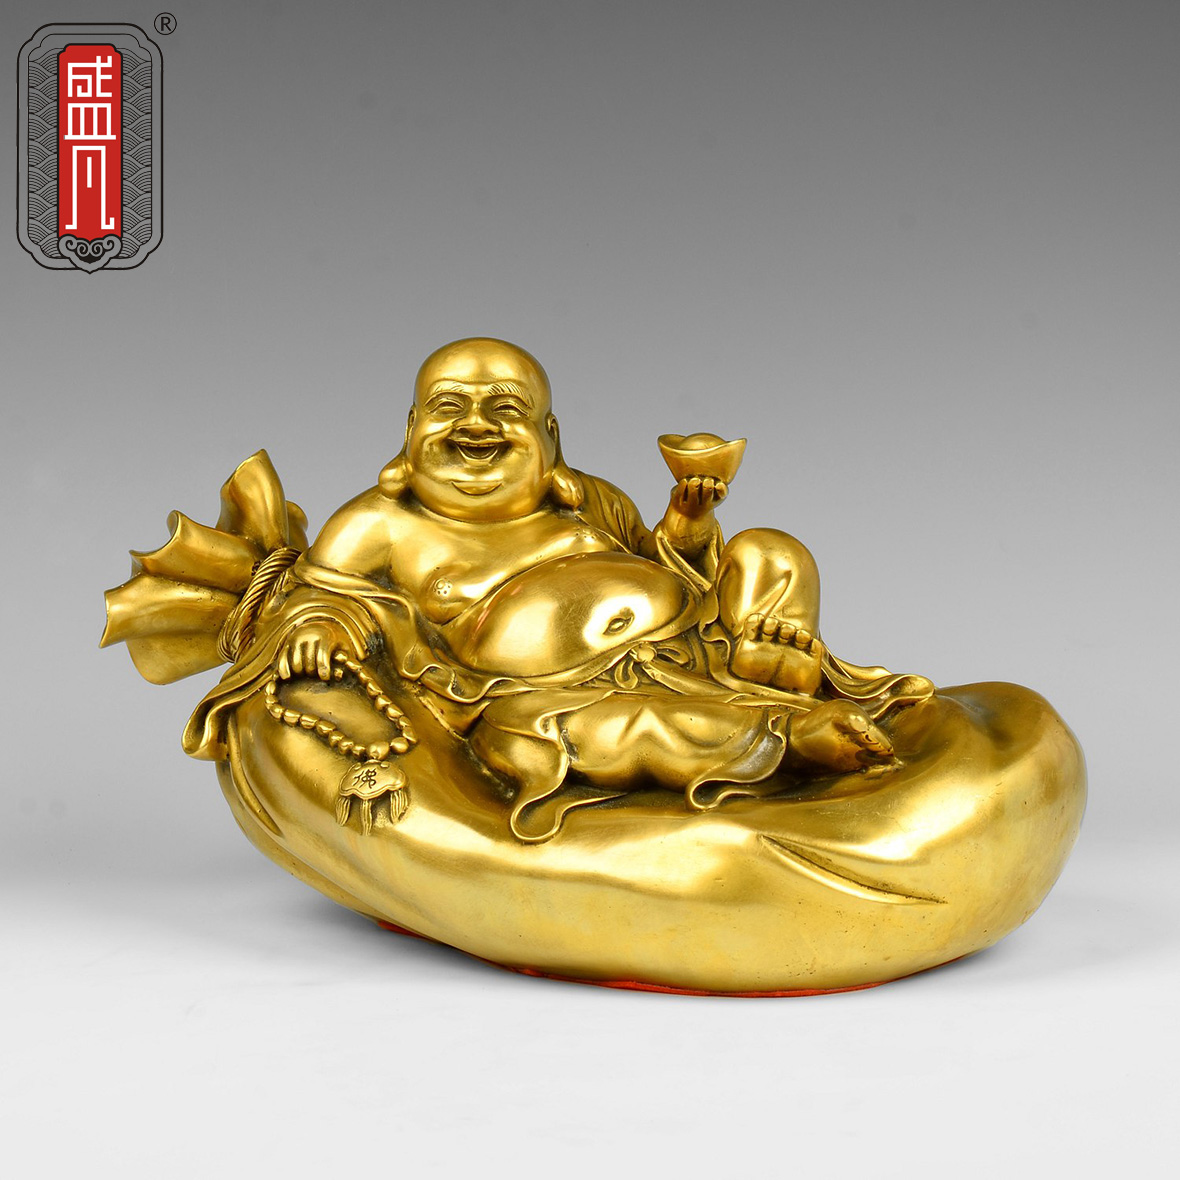 Sheng where copper gold bag laughing buddha maitreya buddha ornaments lucky feng shui living room den home decorations